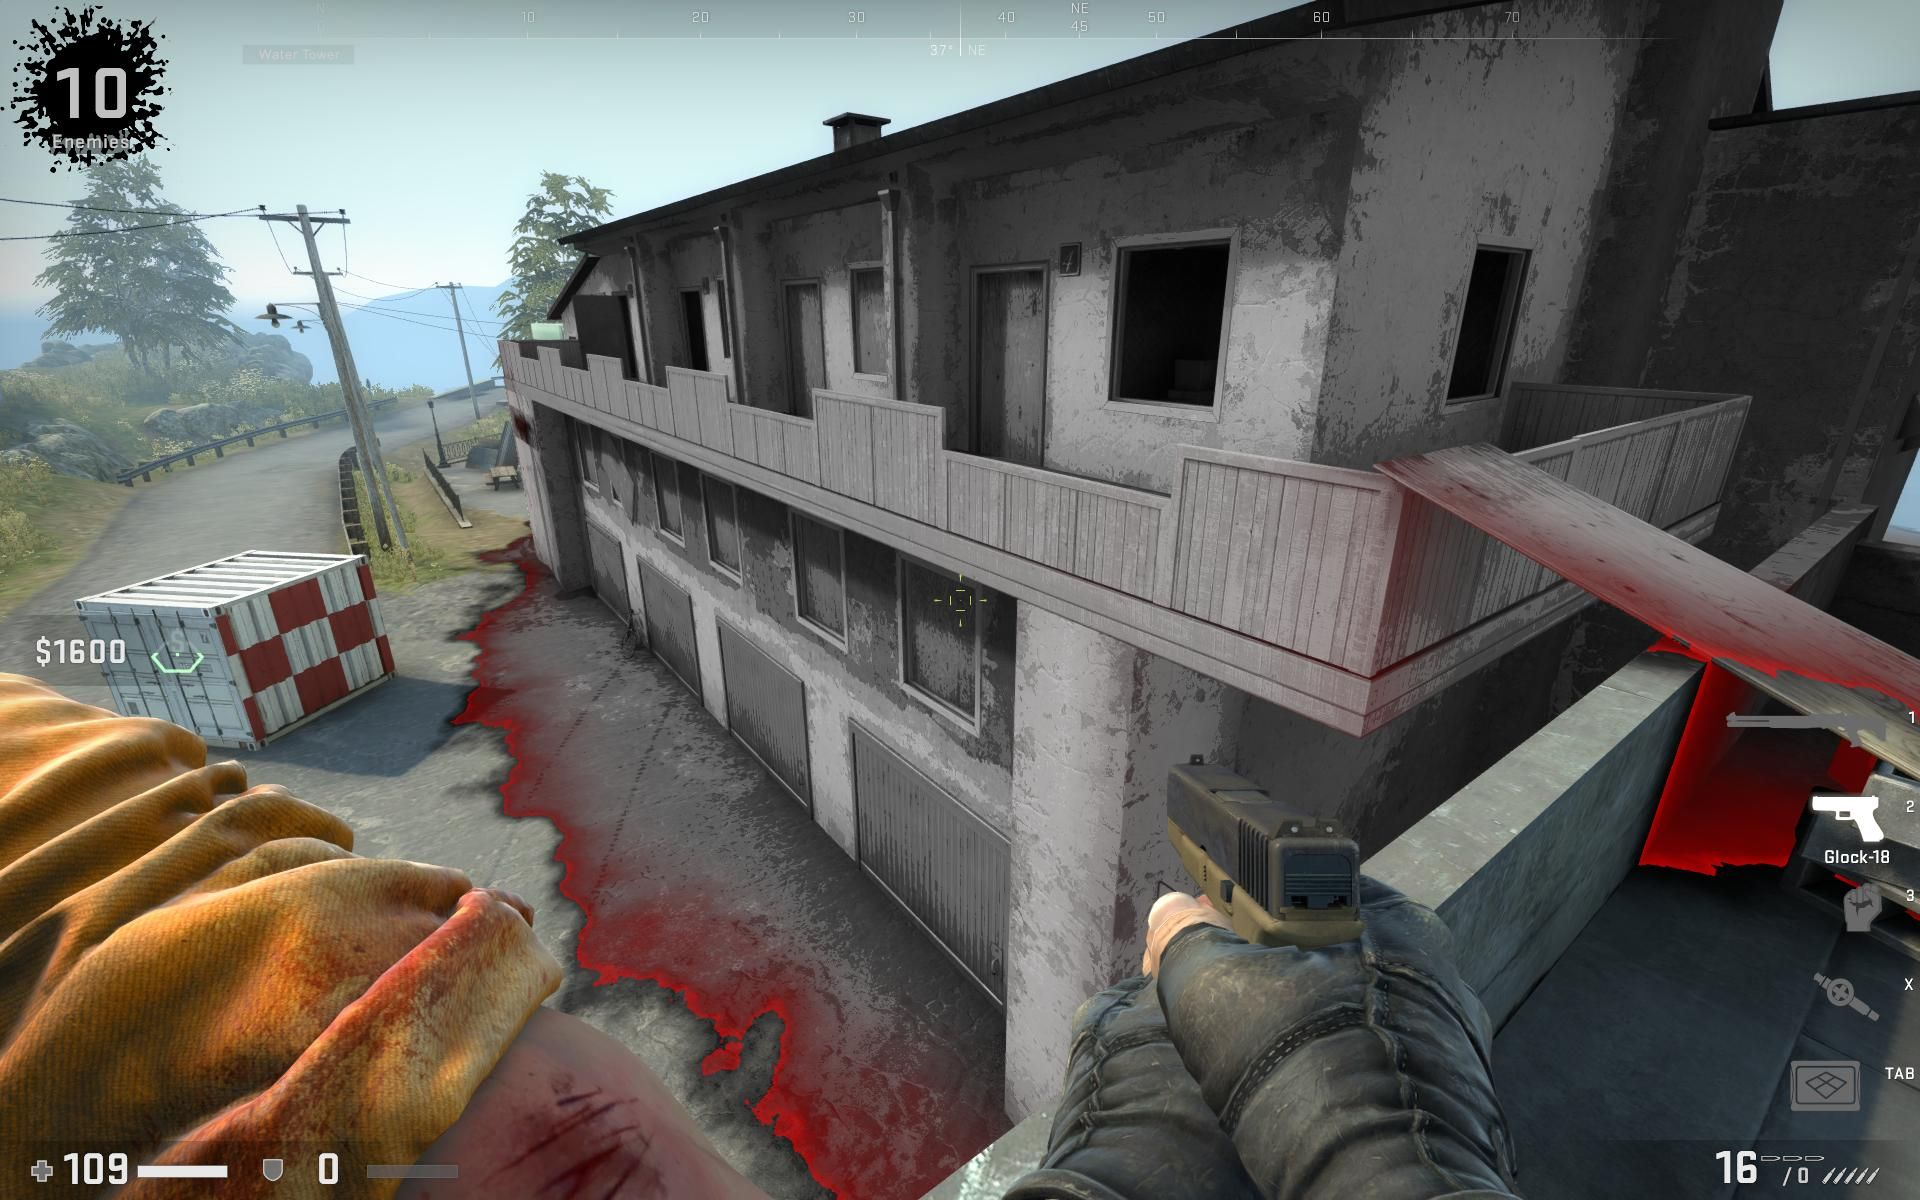 Has Counter-Strike: Global Offensive been improved by its updates